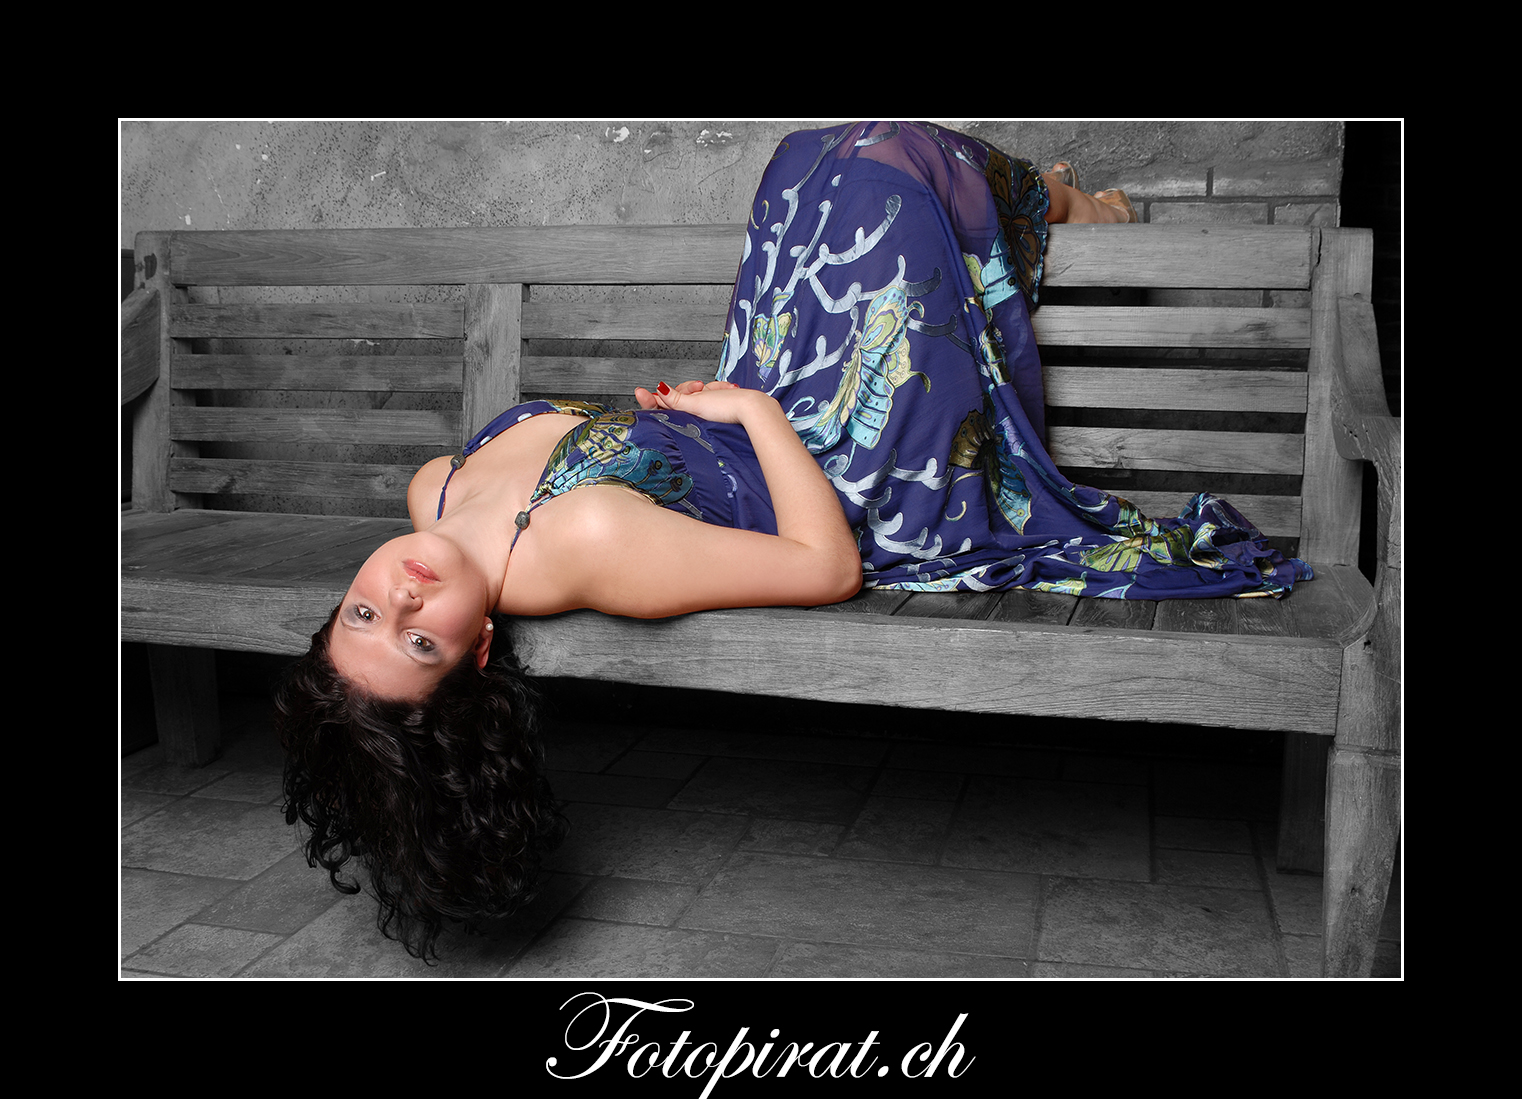 Fotoshooting On Location, Modelagentur, Sportmodel, eyecatcher, Fotomodel